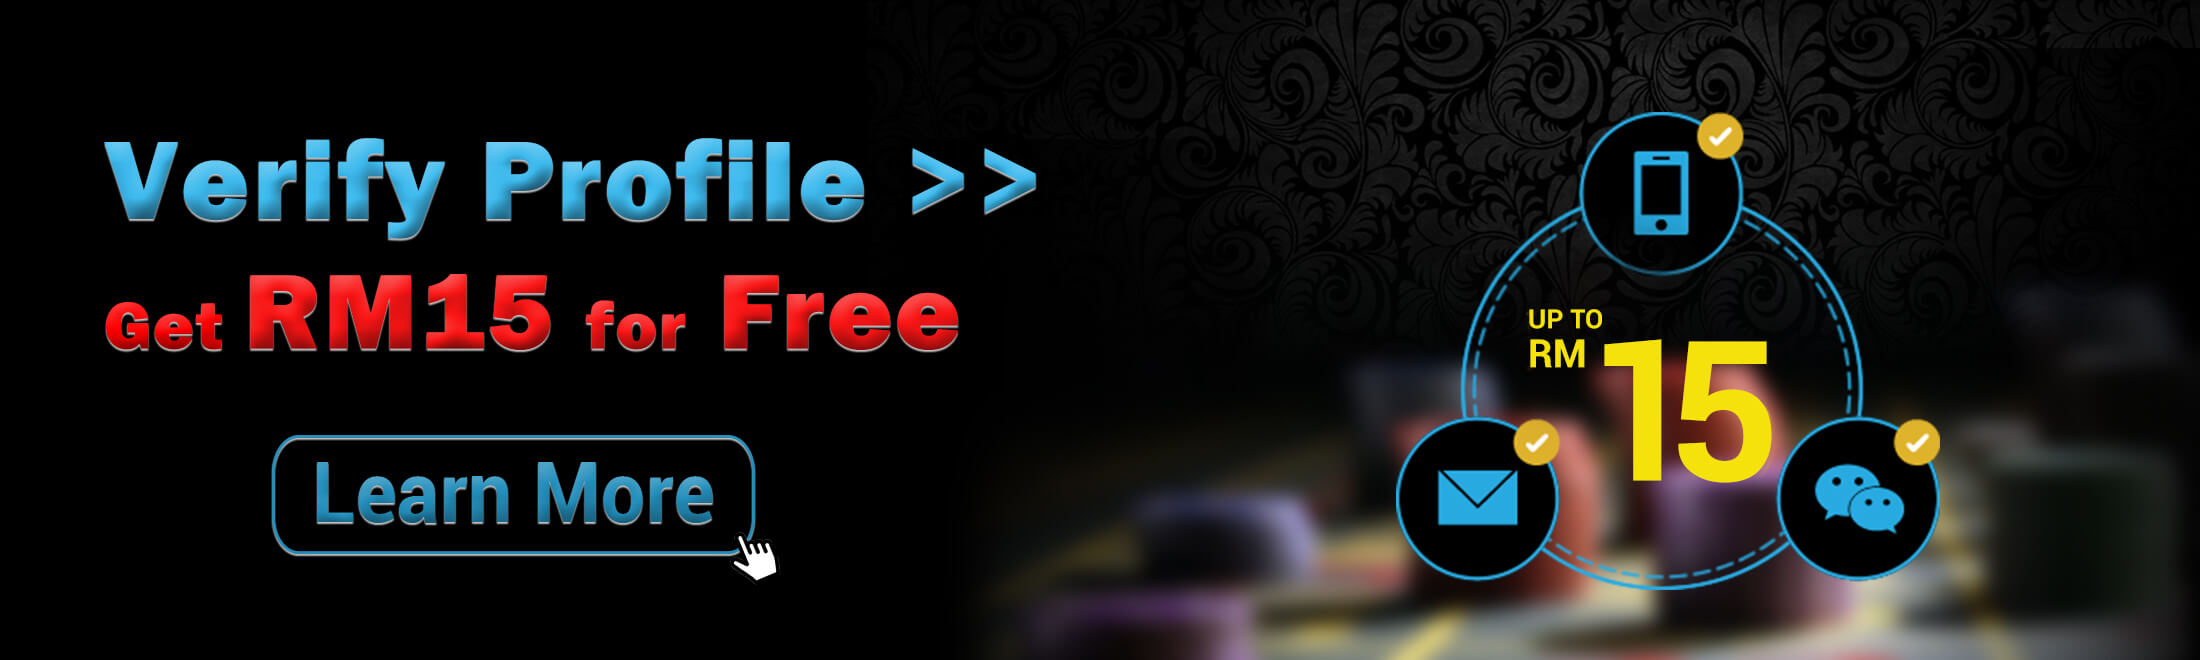 4D Online Casino Verify and Get RM 15 For Free